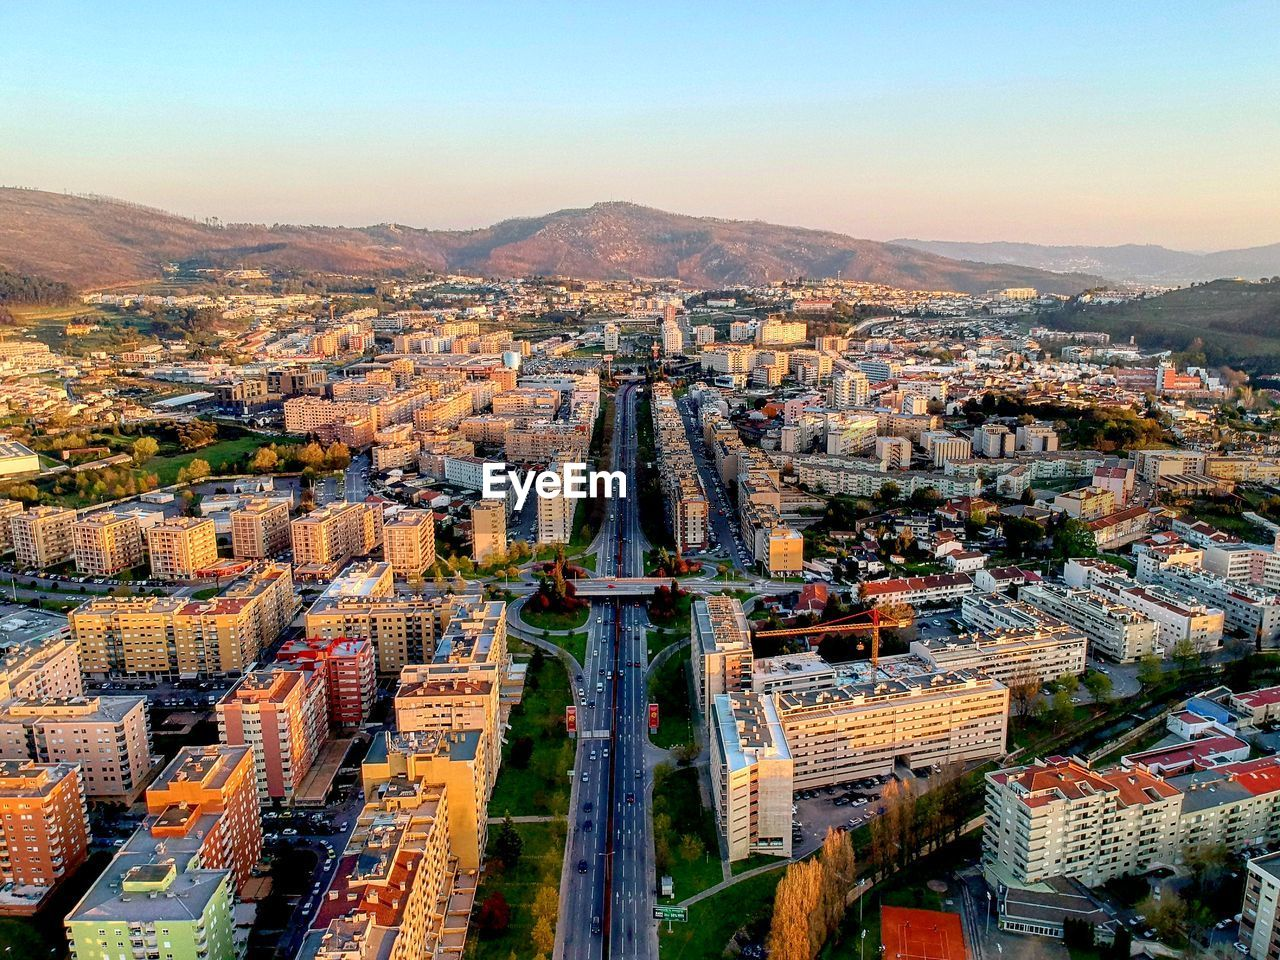 architecture, city, built structure, building exterior, cityscape, sky, crowded, crowd, building, high angle view, residential district, aerial view, nature, mountain, travel destinations, day, outdoors, clear sky, office building exterior, skyscraper, townscape